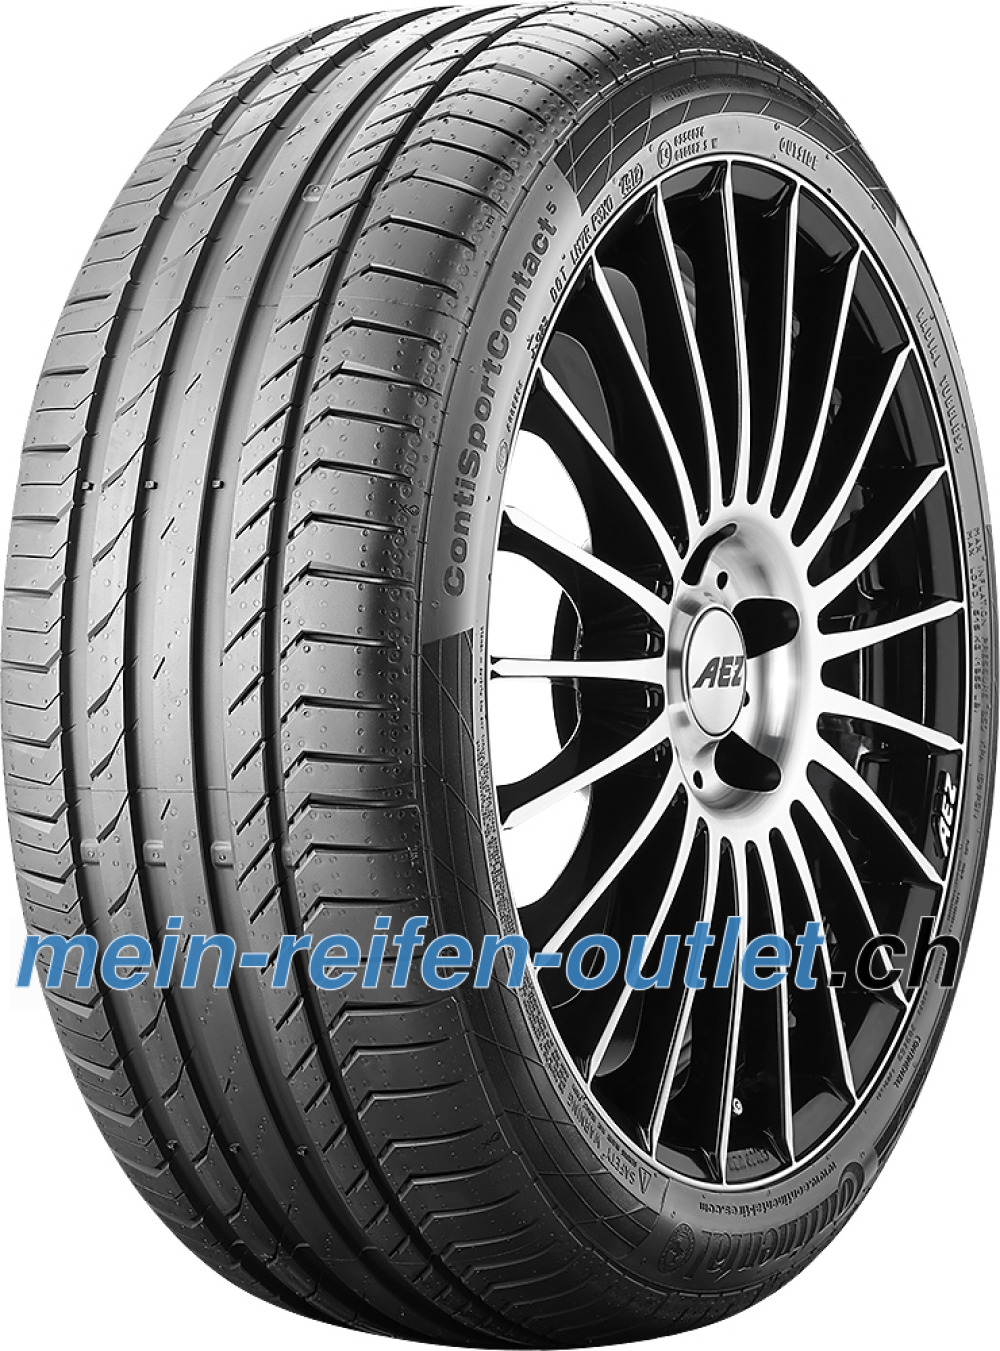 Continental ContiSportContact 5 ( 245/35 R21 96W XL ContiSilent, mit Felgenrippe )